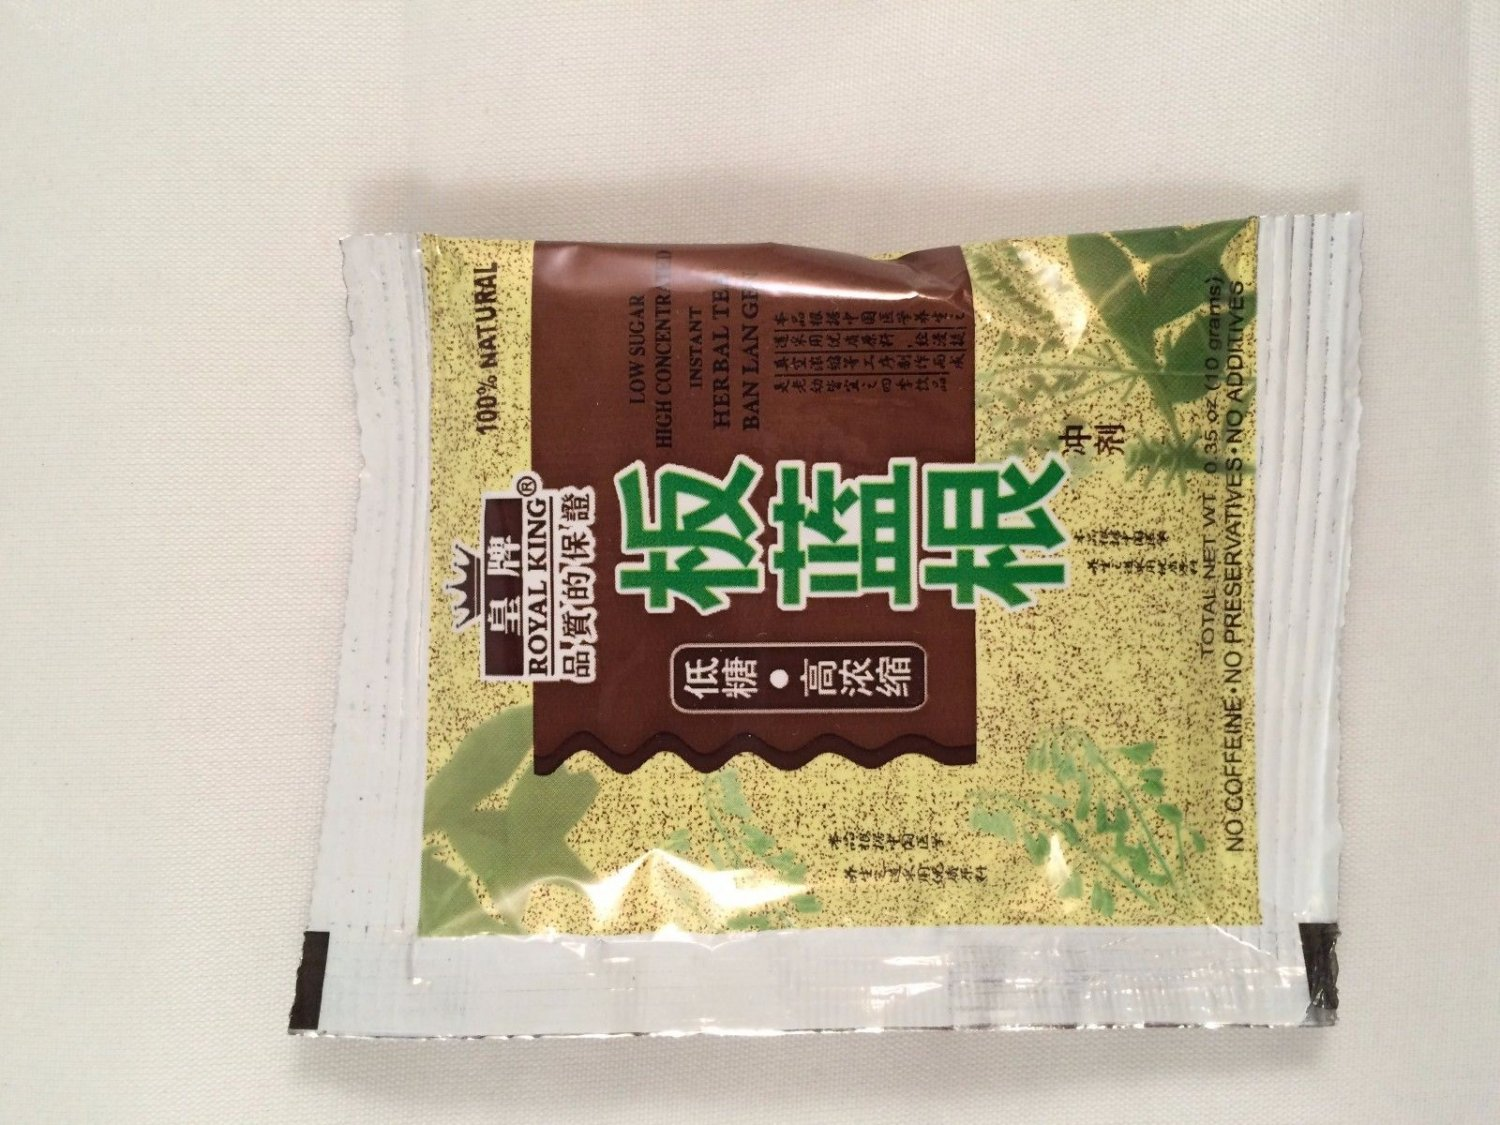 Royal king Instant Herbal Tea Ban Lan Gen 3.5 Oz/30 bags NEW